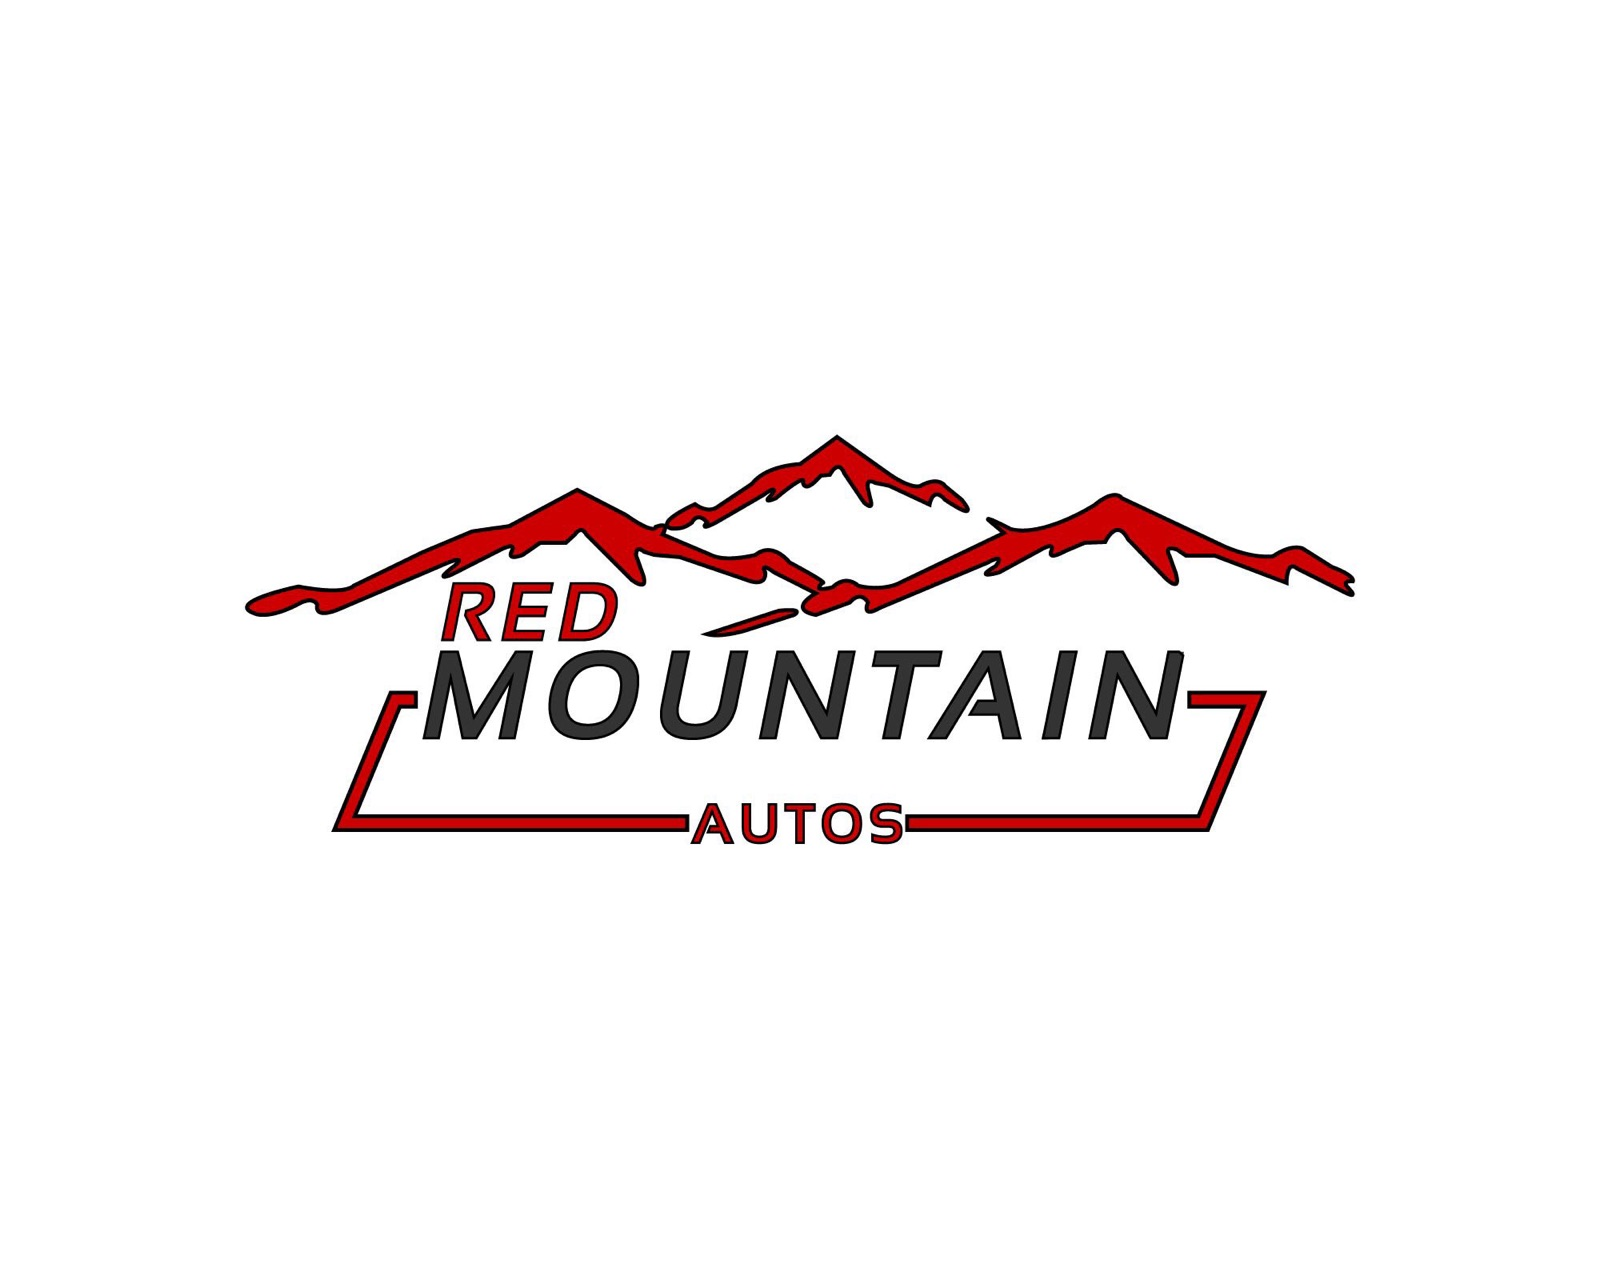 red mountain autos logo